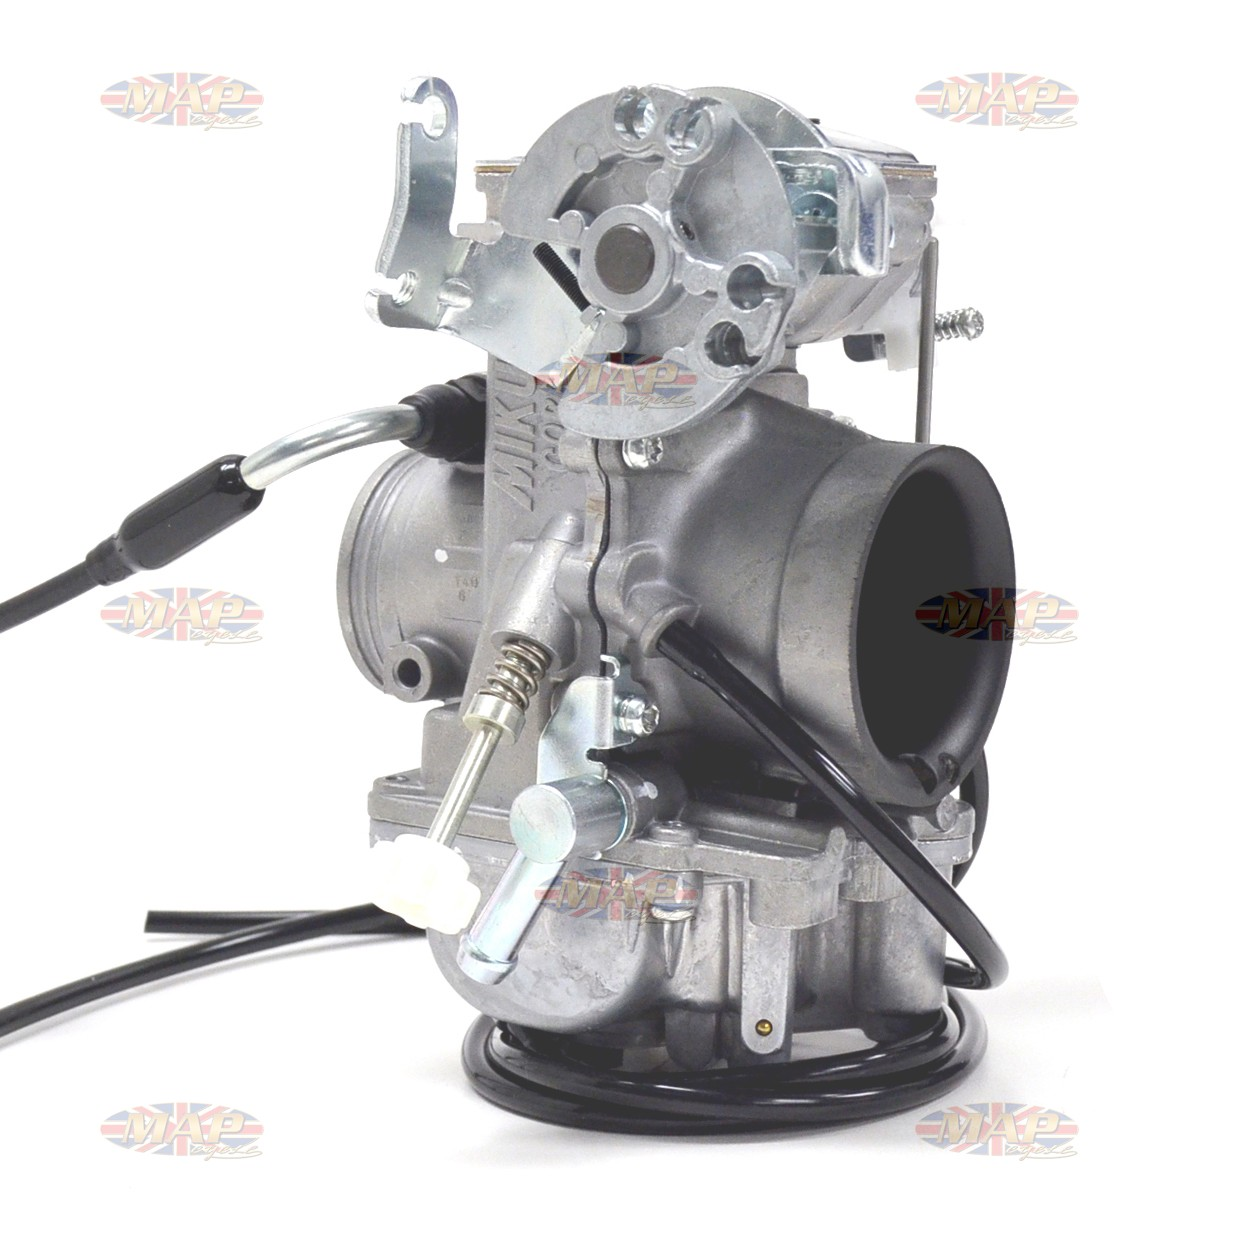 Mikuni TM40 Pumper Flat Slide 40mm Pumper Carburetor